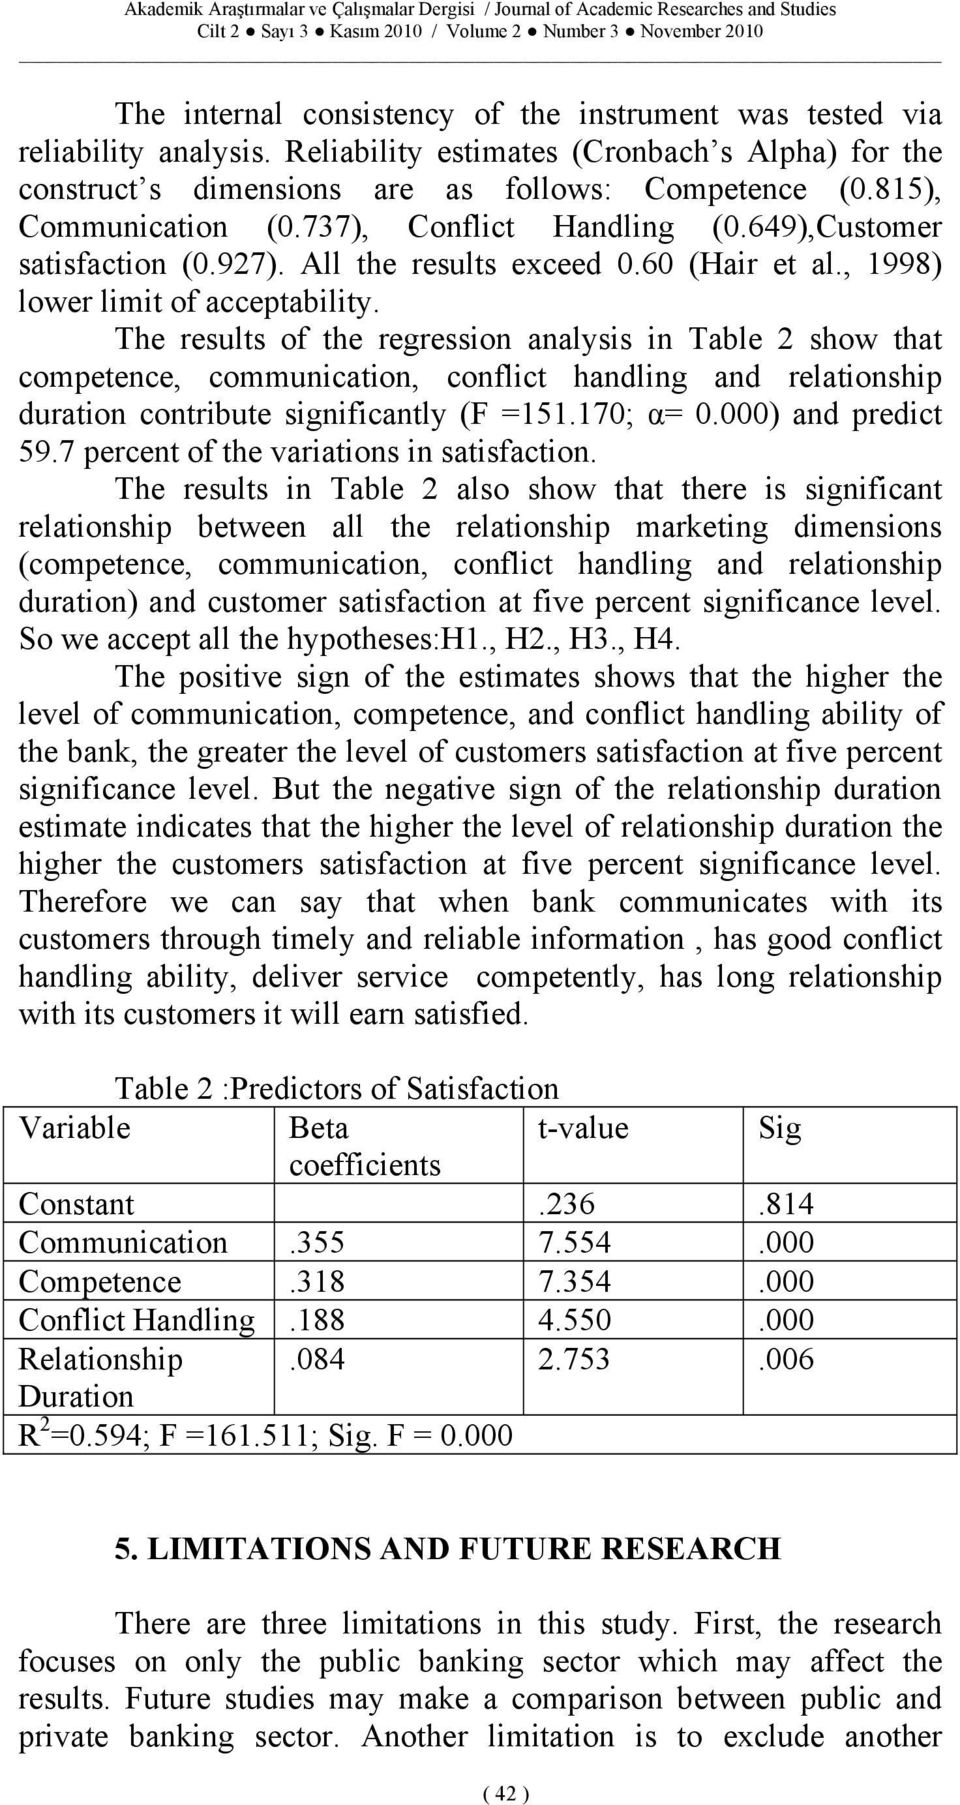 The results of the regression analysis in Table 2 show that competence, communication, conflict handling and relationship duration contribute significantly (F =151.170; α= 0.000) and predict 59.